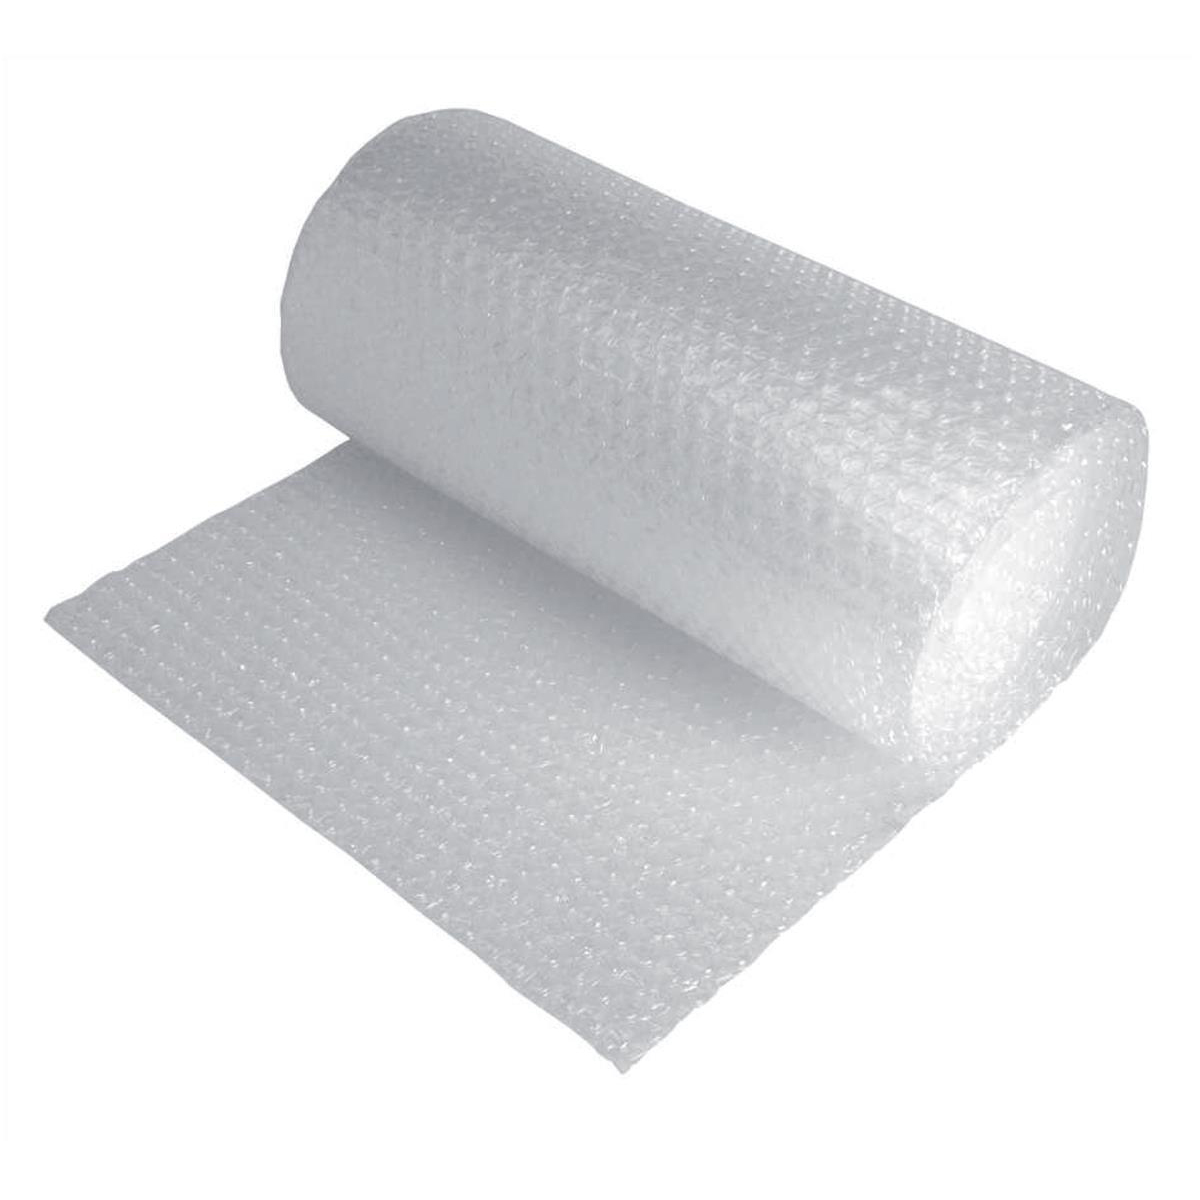 Bubble Wrap Jiffy Bubble Film Roll No Core Bubbles of Diam. 10mmxH5mm 500mmx10m Clear Ref BROC37962